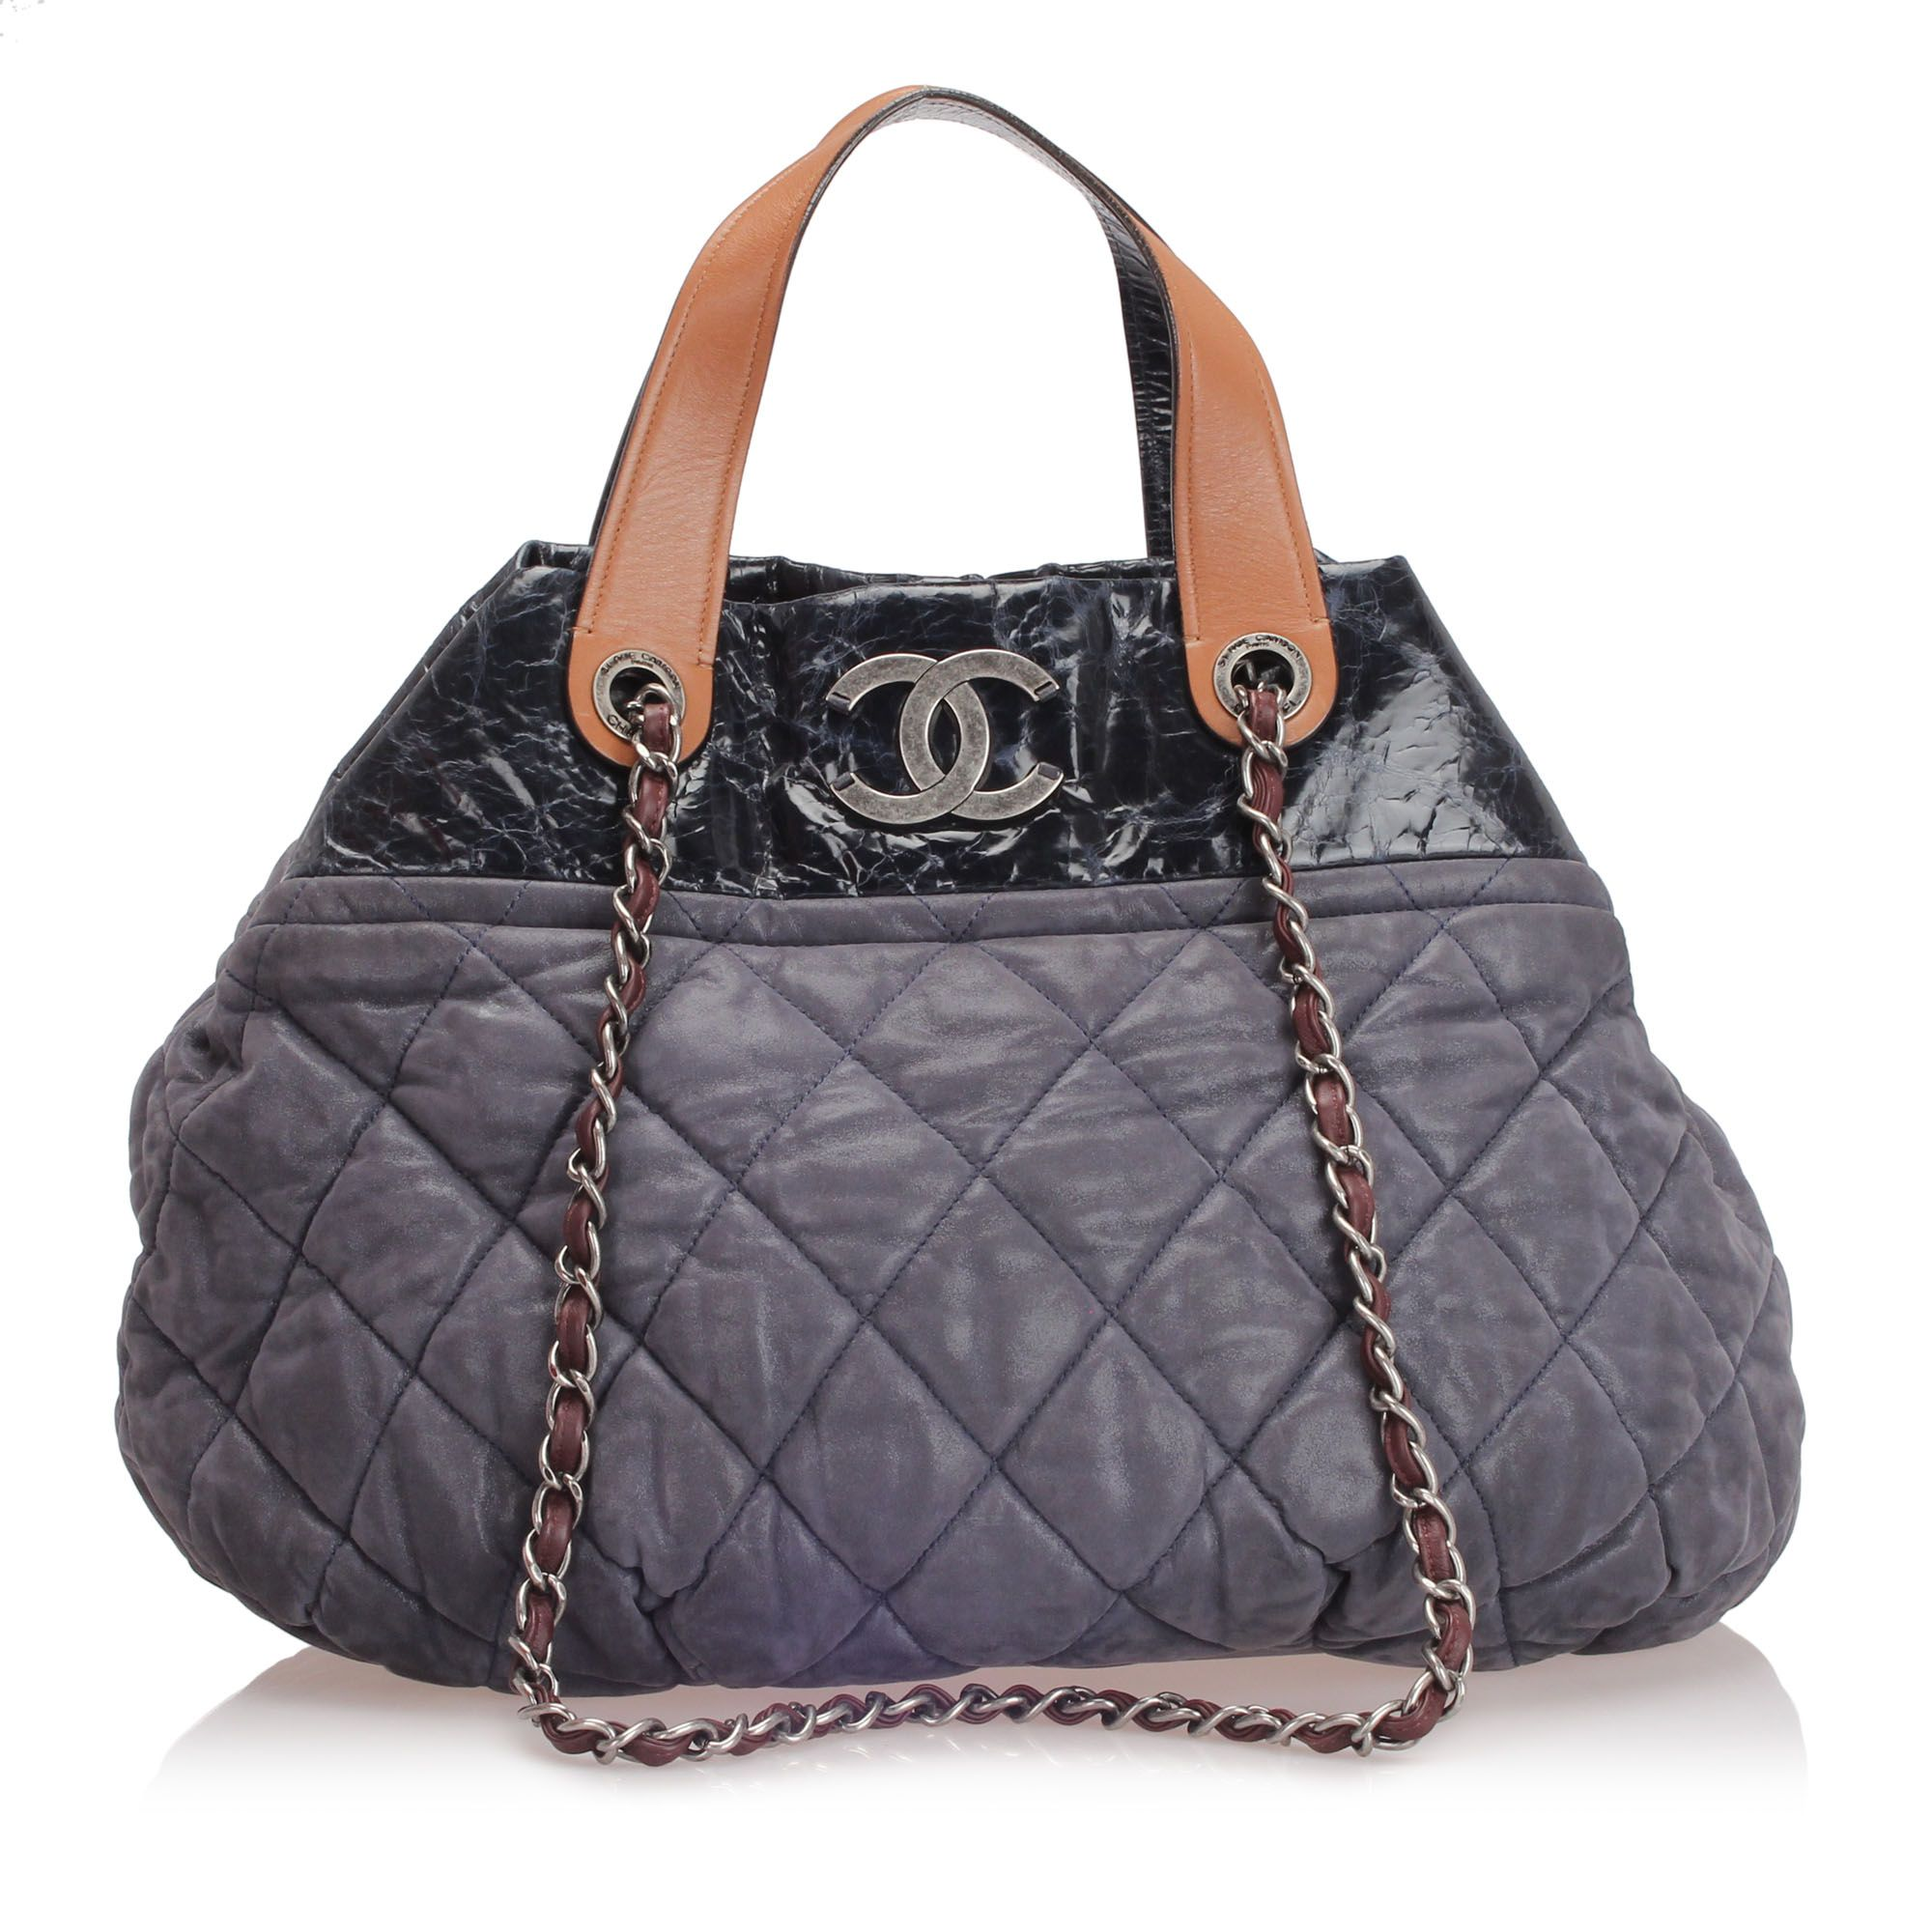 Vintage Chanel In The Mix Lambskin Leather Satchel Black